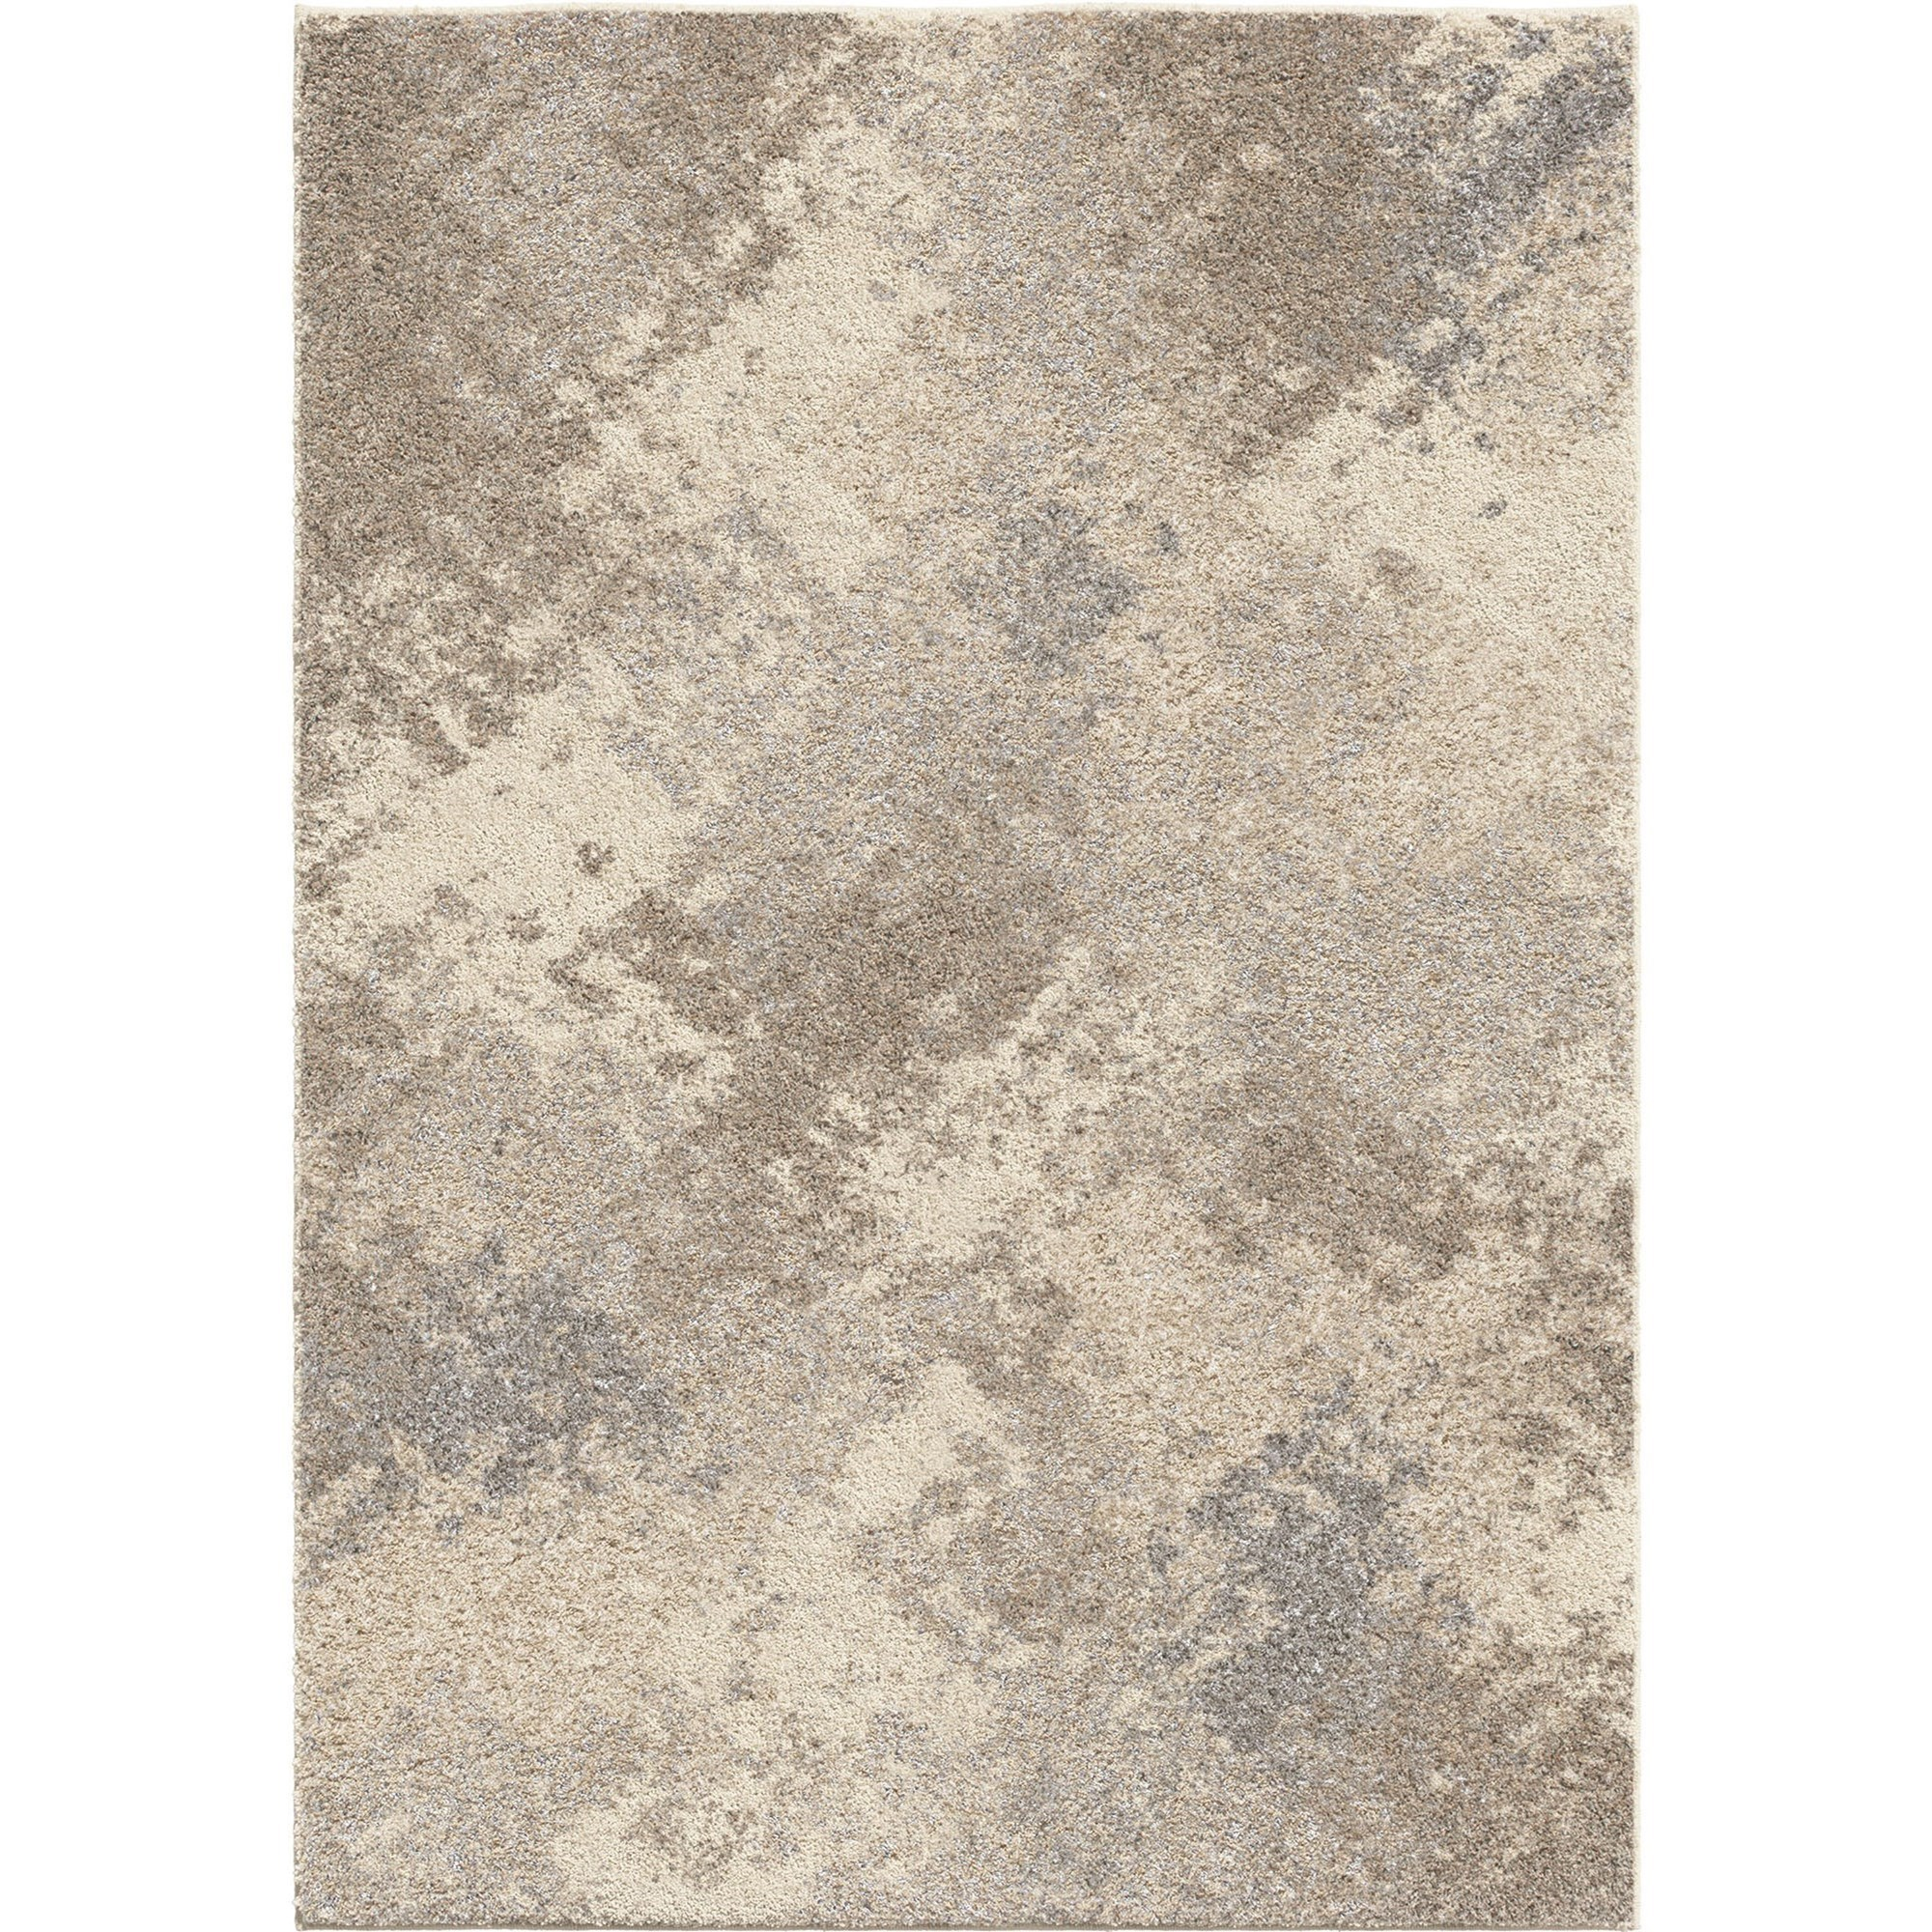 Airhaven Contemporary 8x10 Area Rug in Cream/Grey at Sadler's Home Furnishings